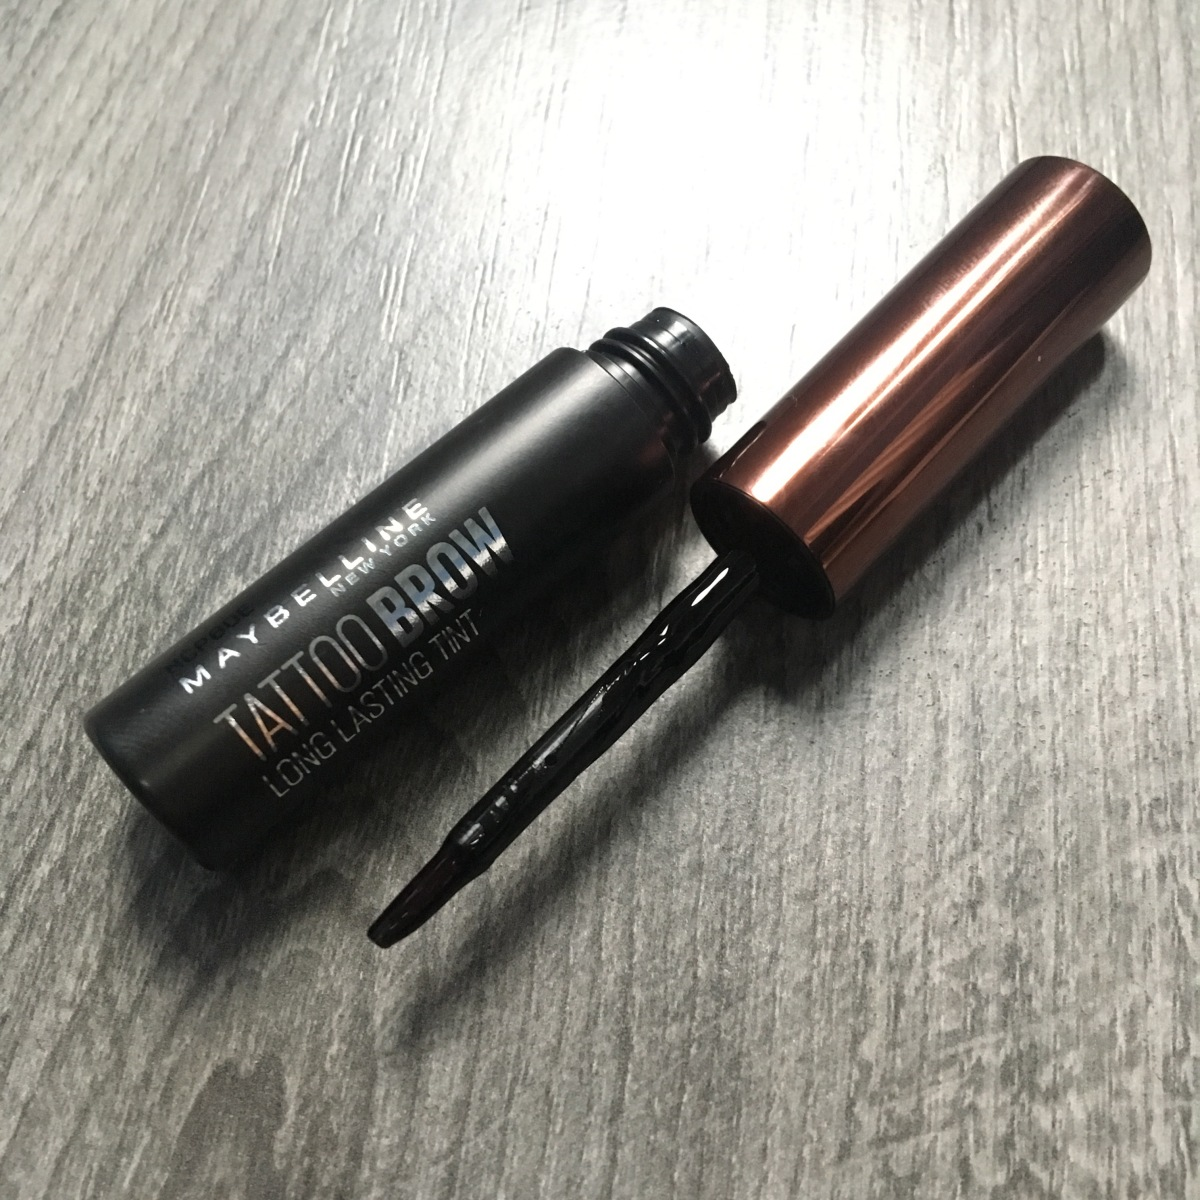 The brow product that lasts 3 days | Ft. Maybelline Tattoo BrowGel